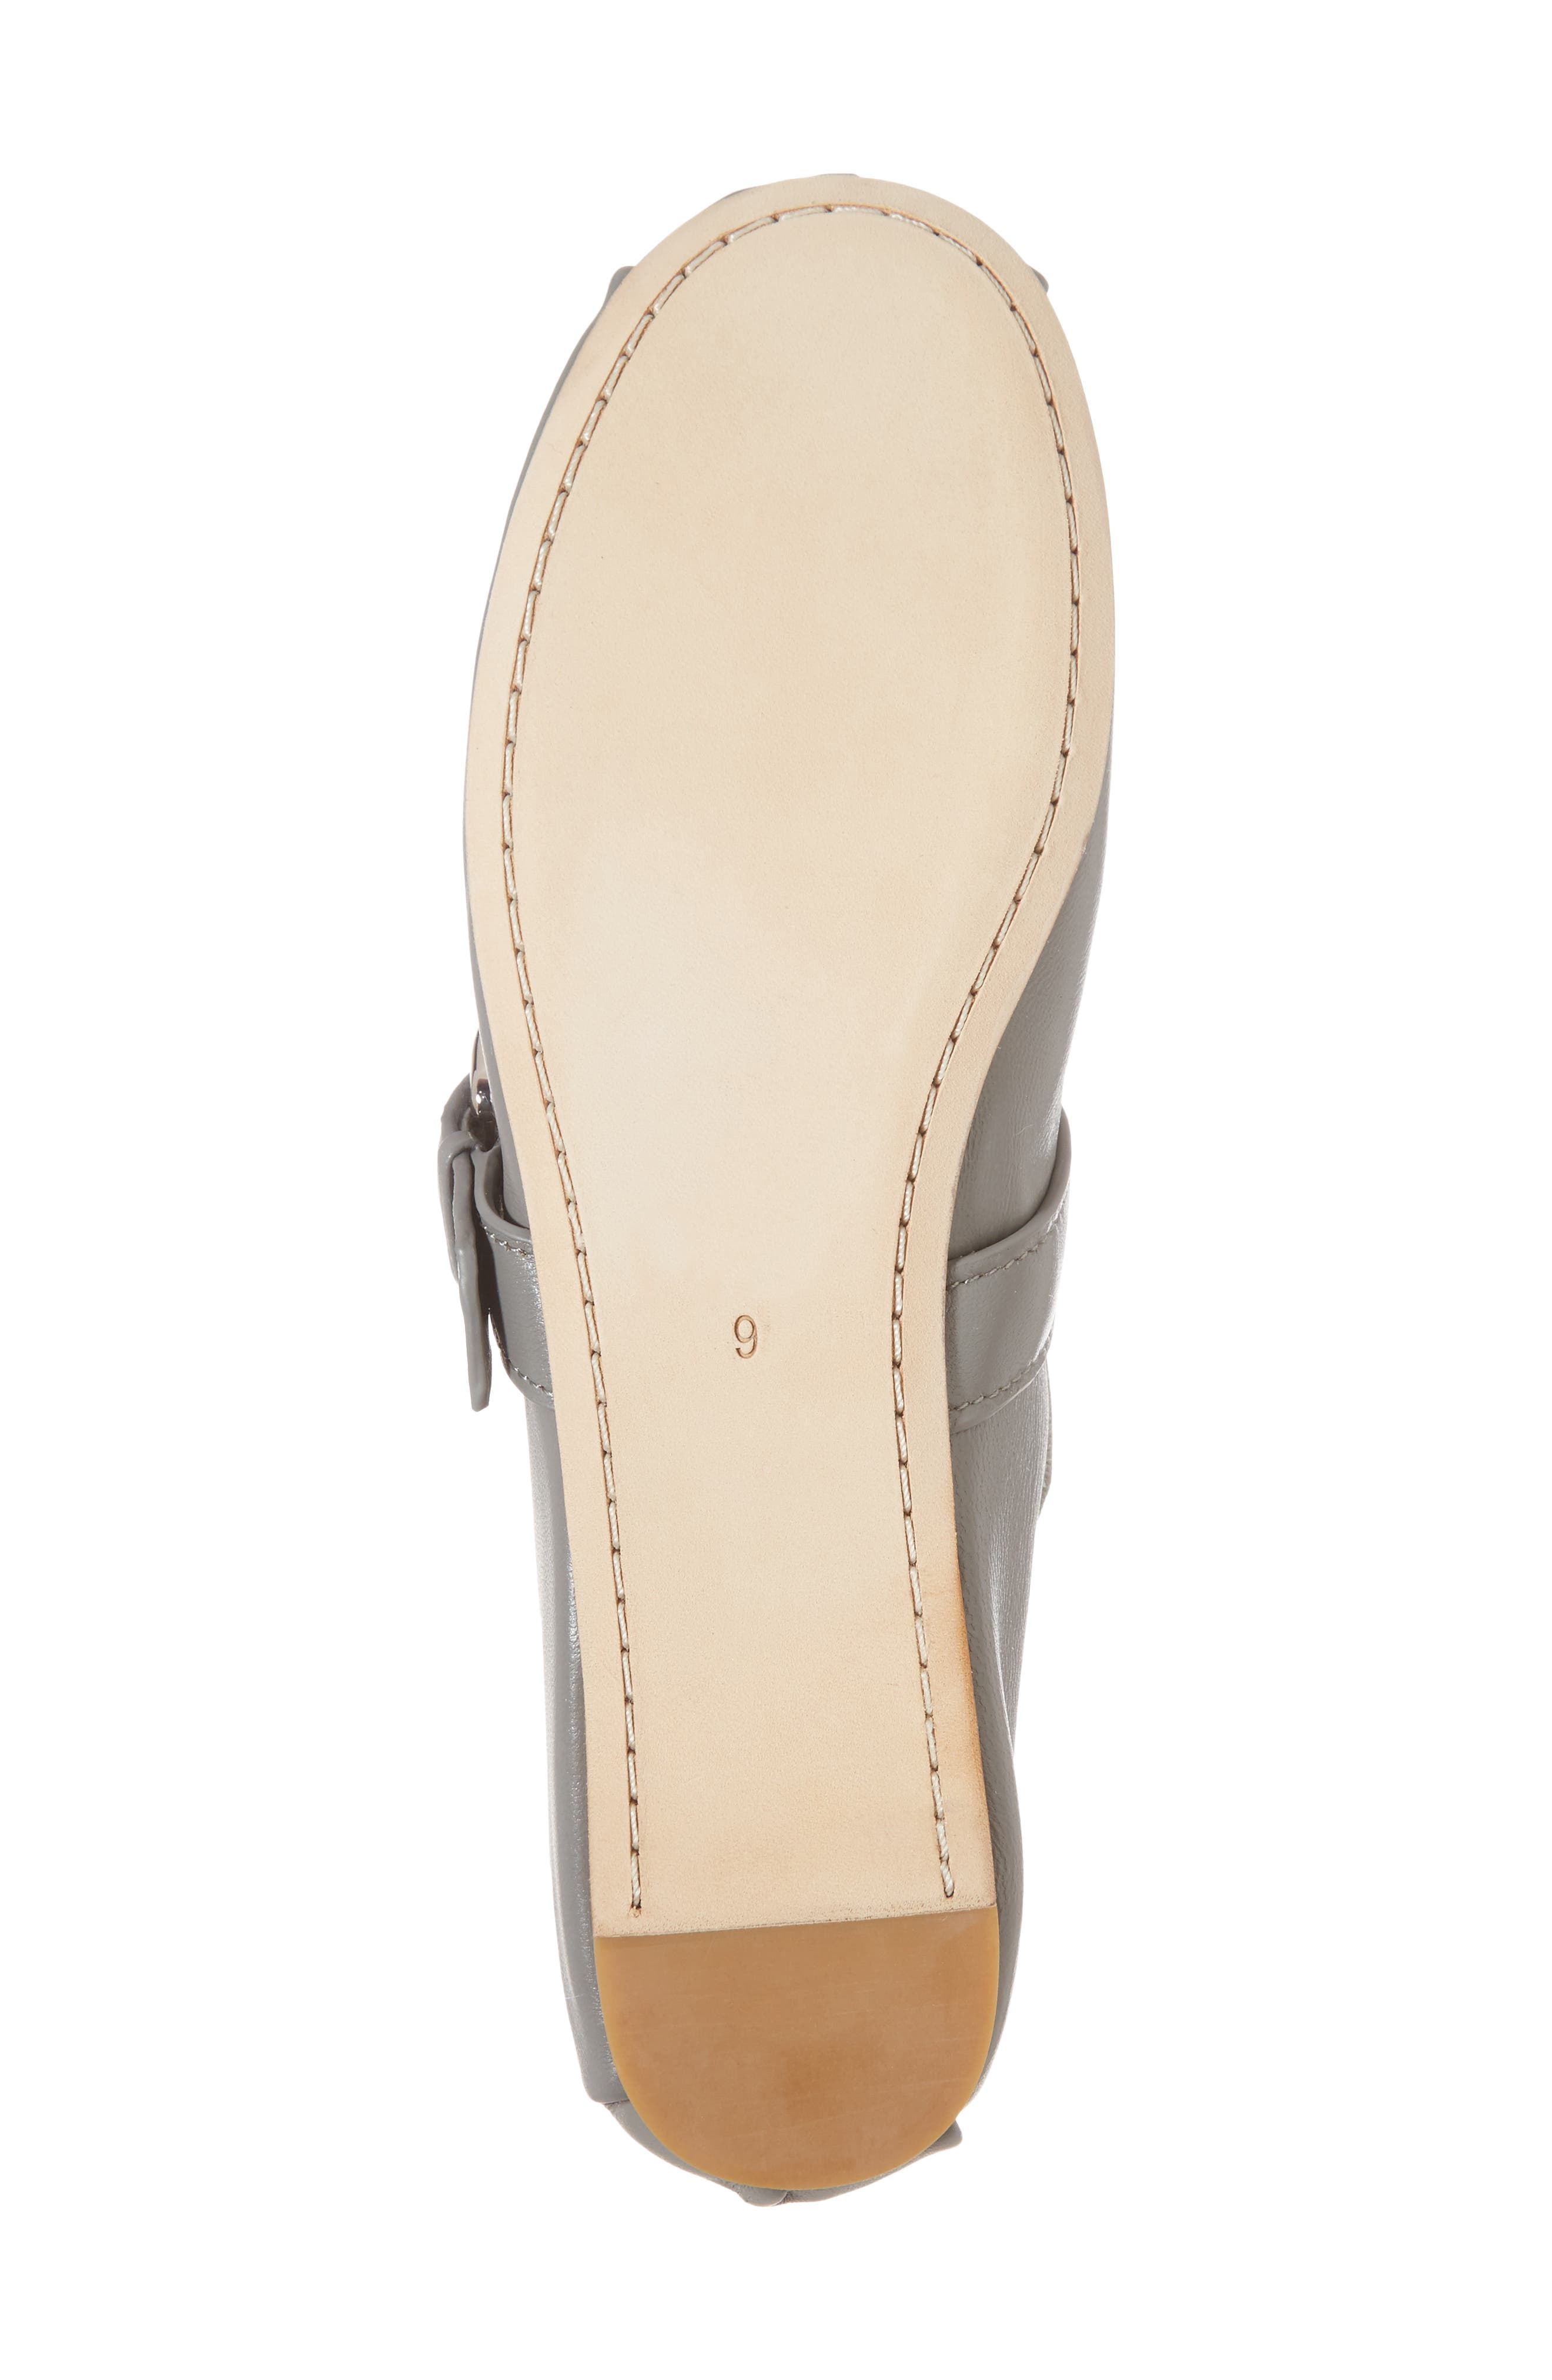 Molly Mary Jane Flat,                             Alternate thumbnail 6, color,                             Grey Leather